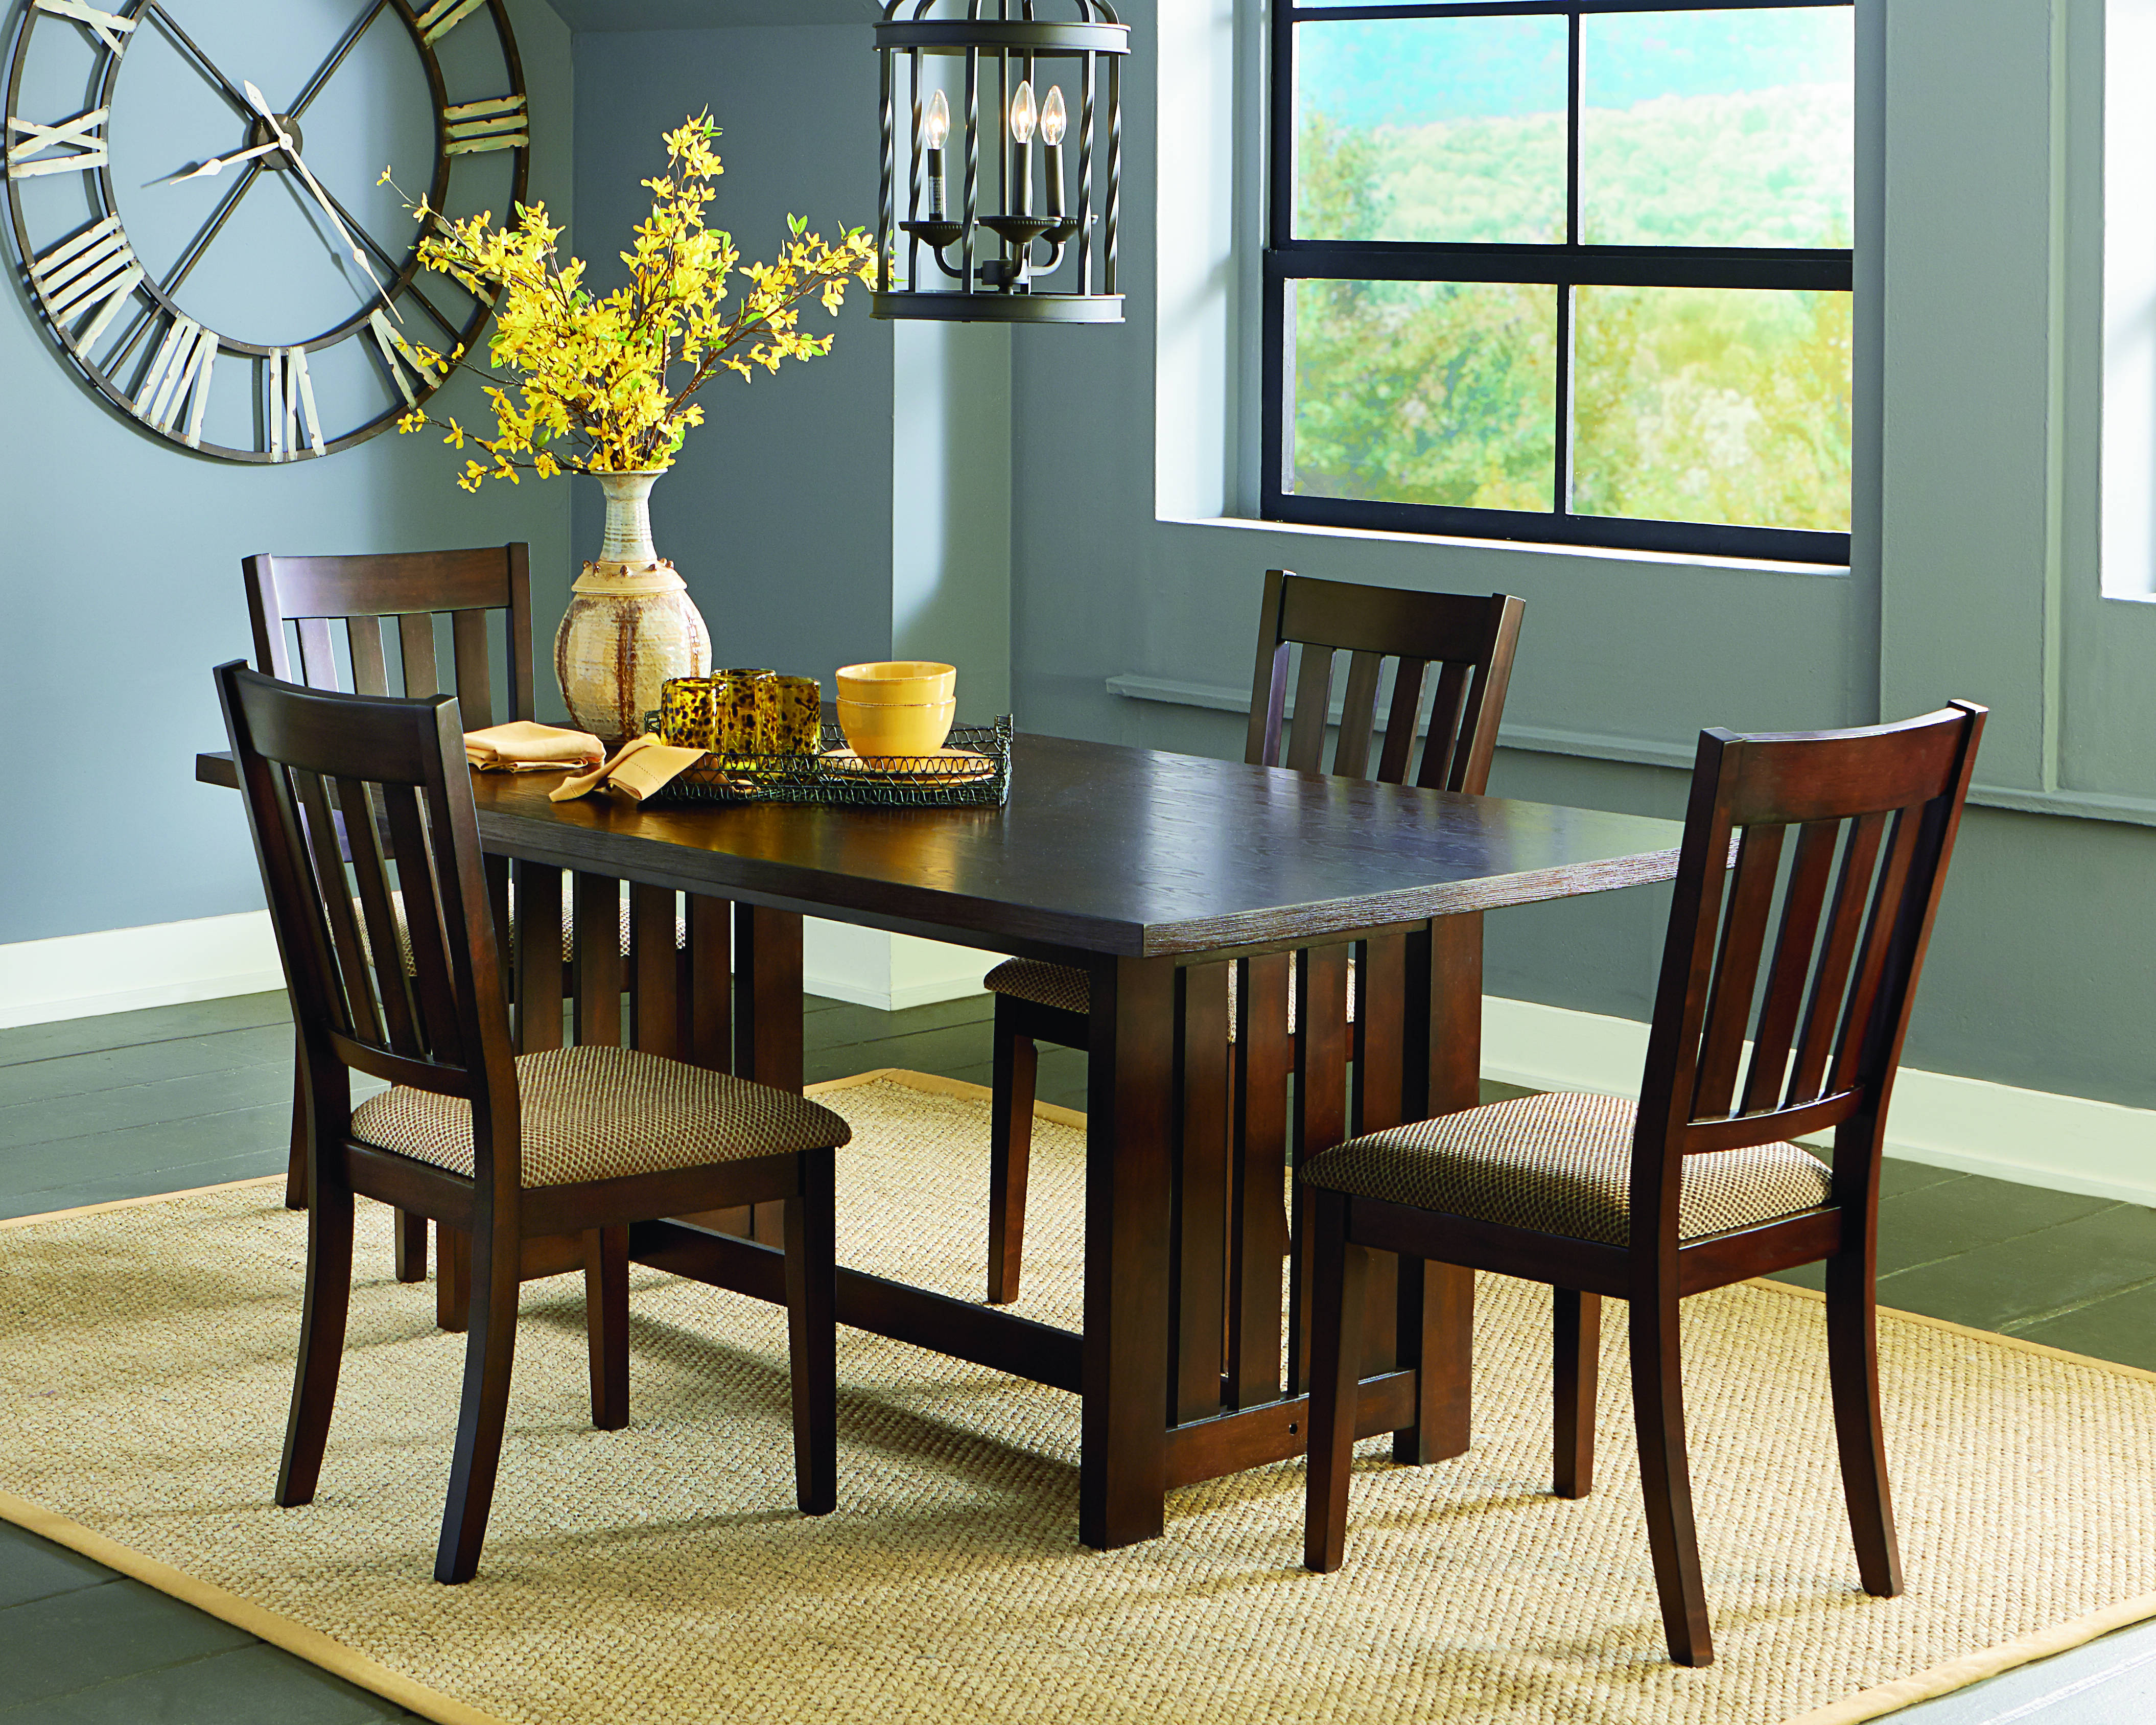 kennedy transitional bruno brown rubberwood 5pc dining room set the classy home. Black Bedroom Furniture Sets. Home Design Ideas